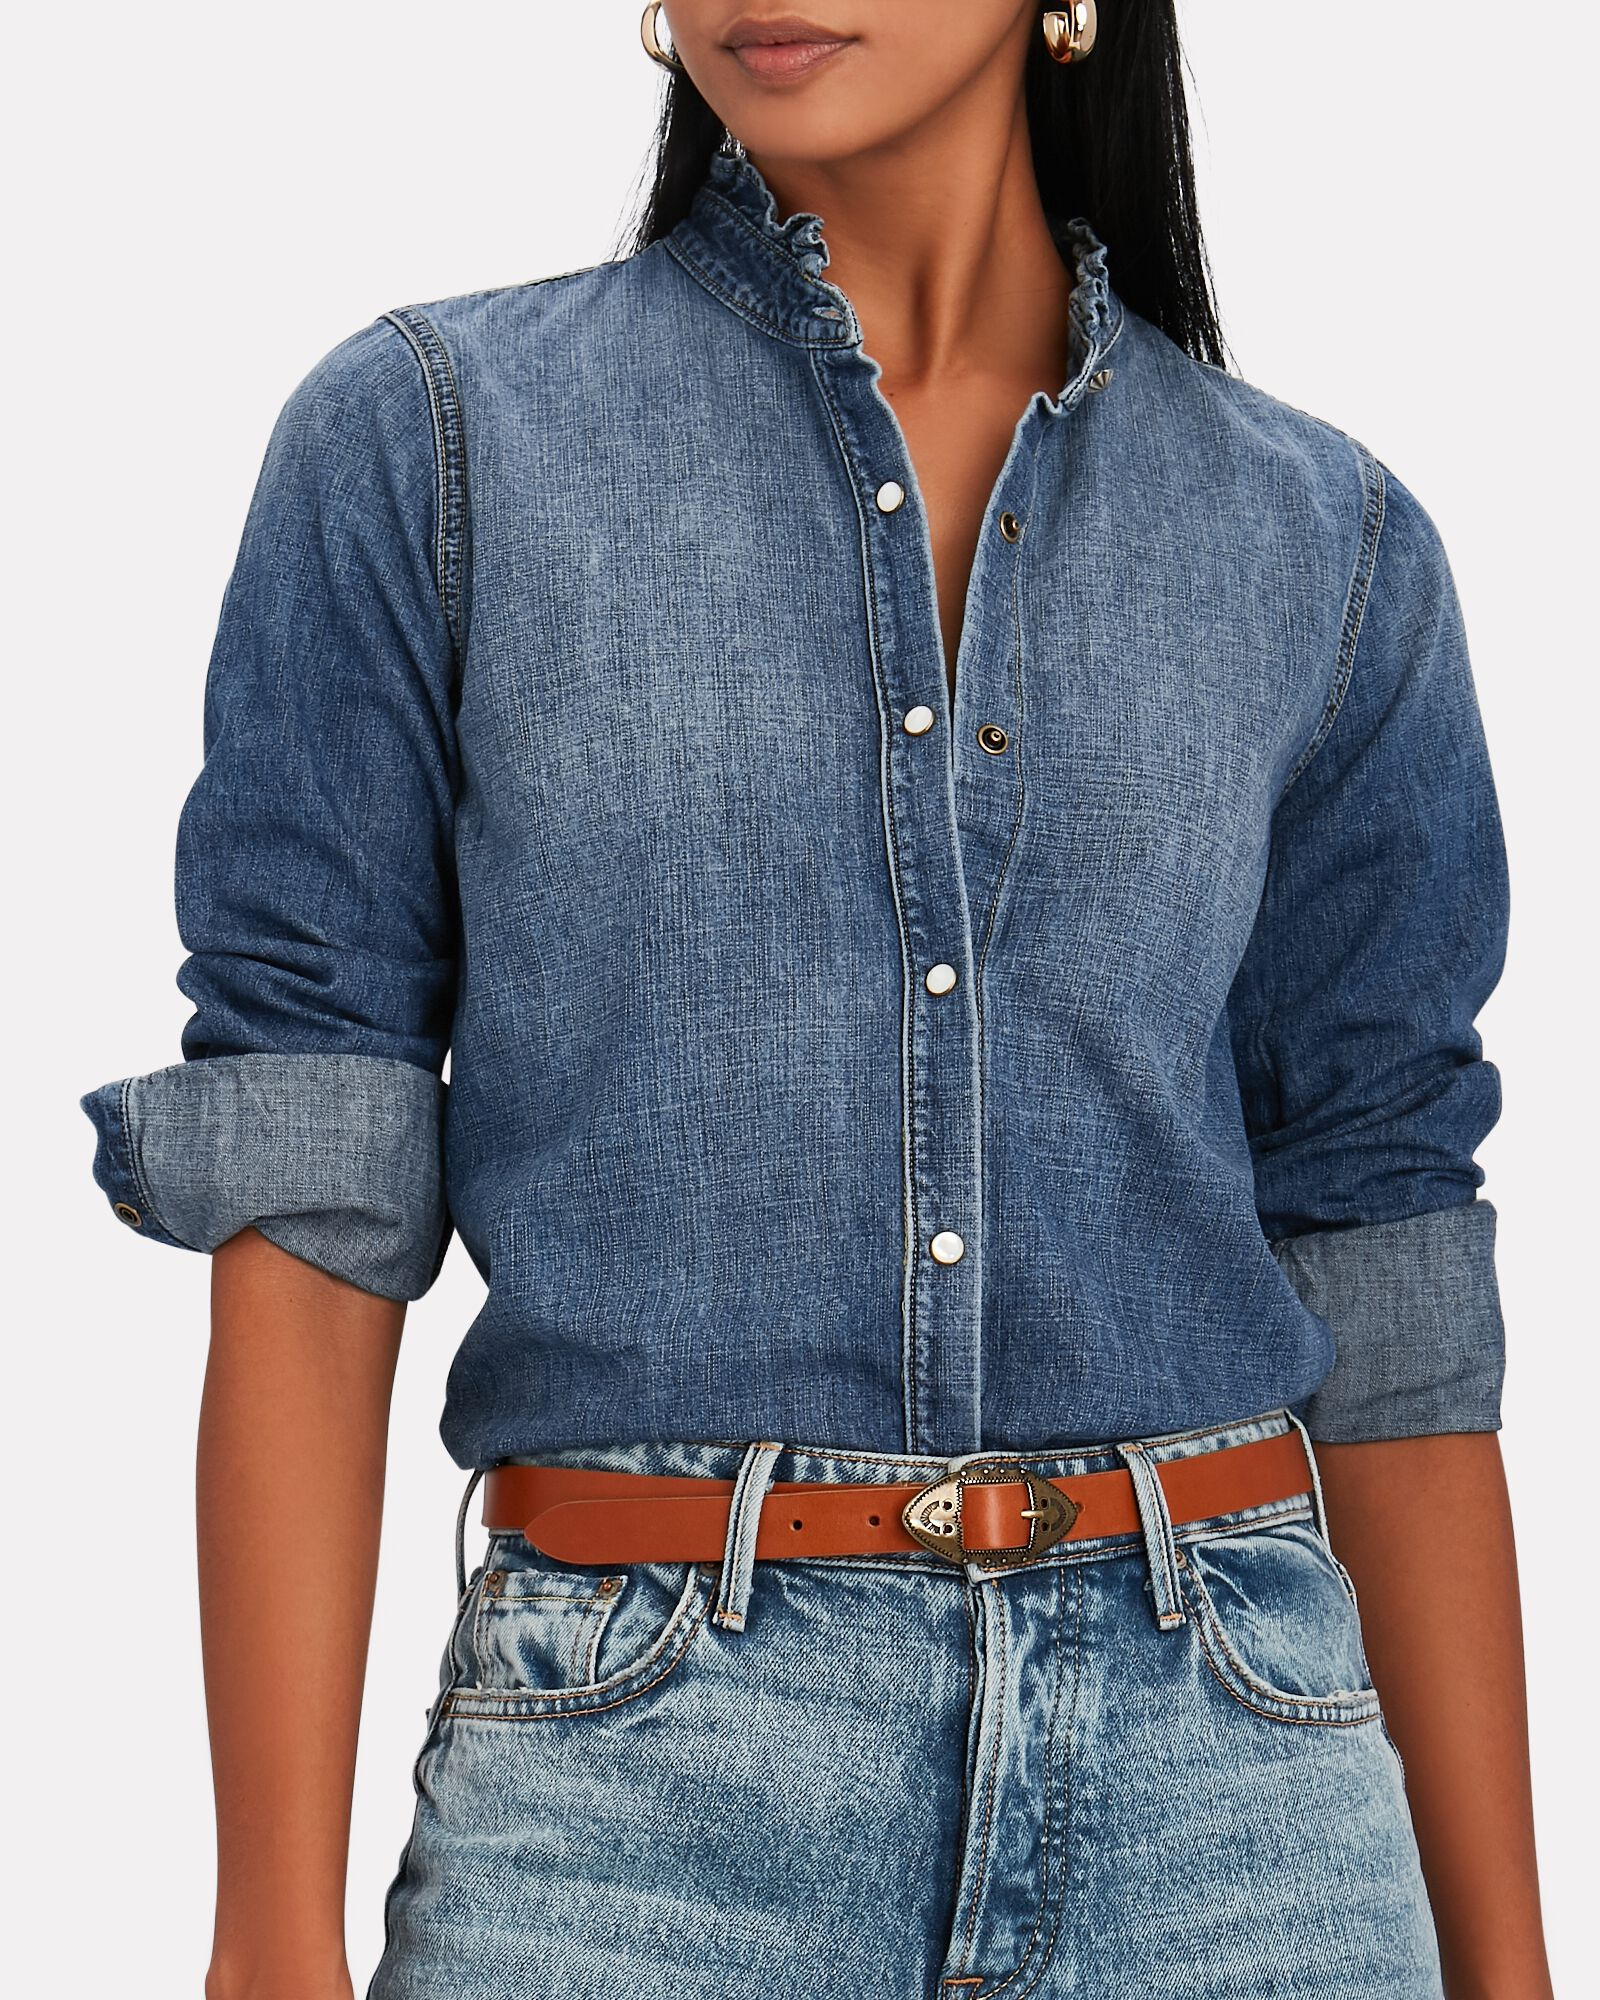 Lennon Ruffled Chambray Shirt, MEDIUM WASH DENIM, hi-res